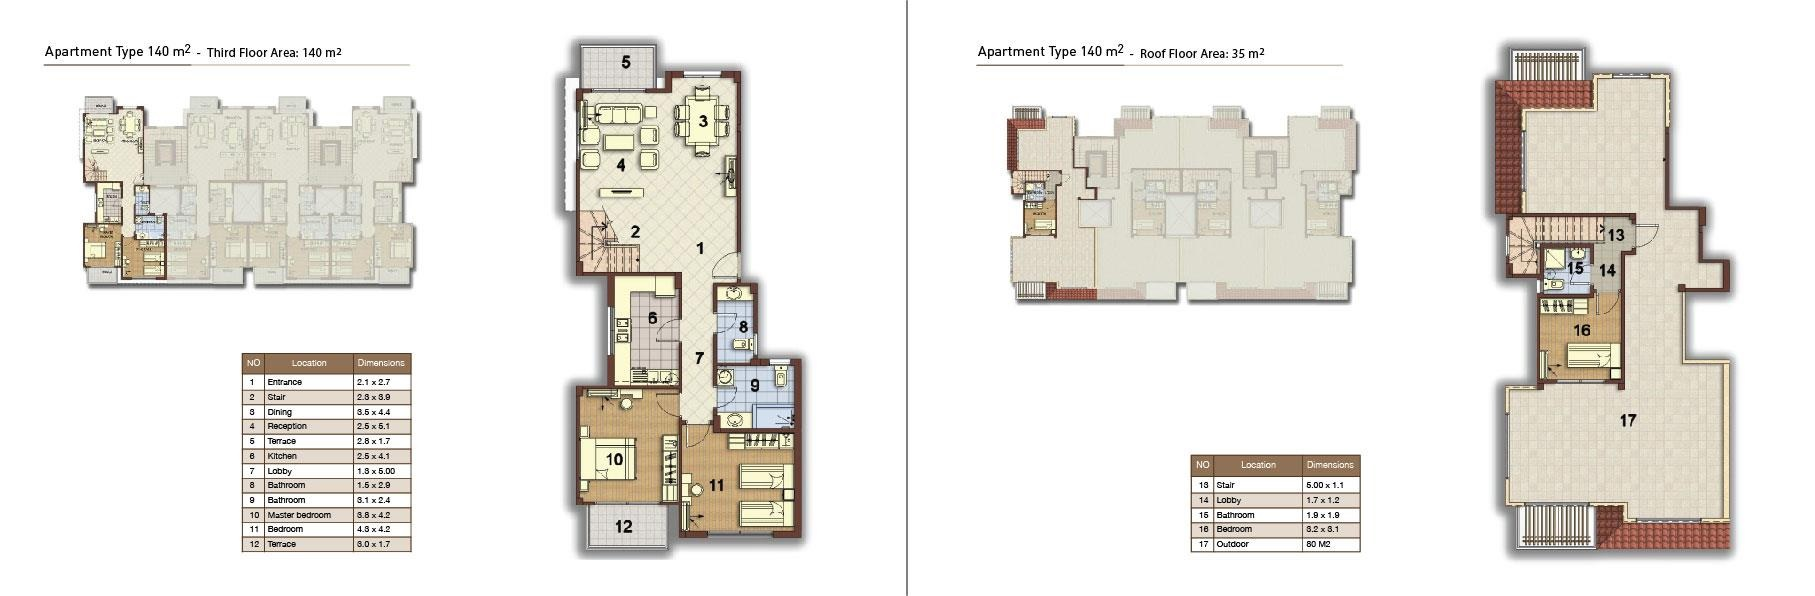 apartment type 140 corner 02